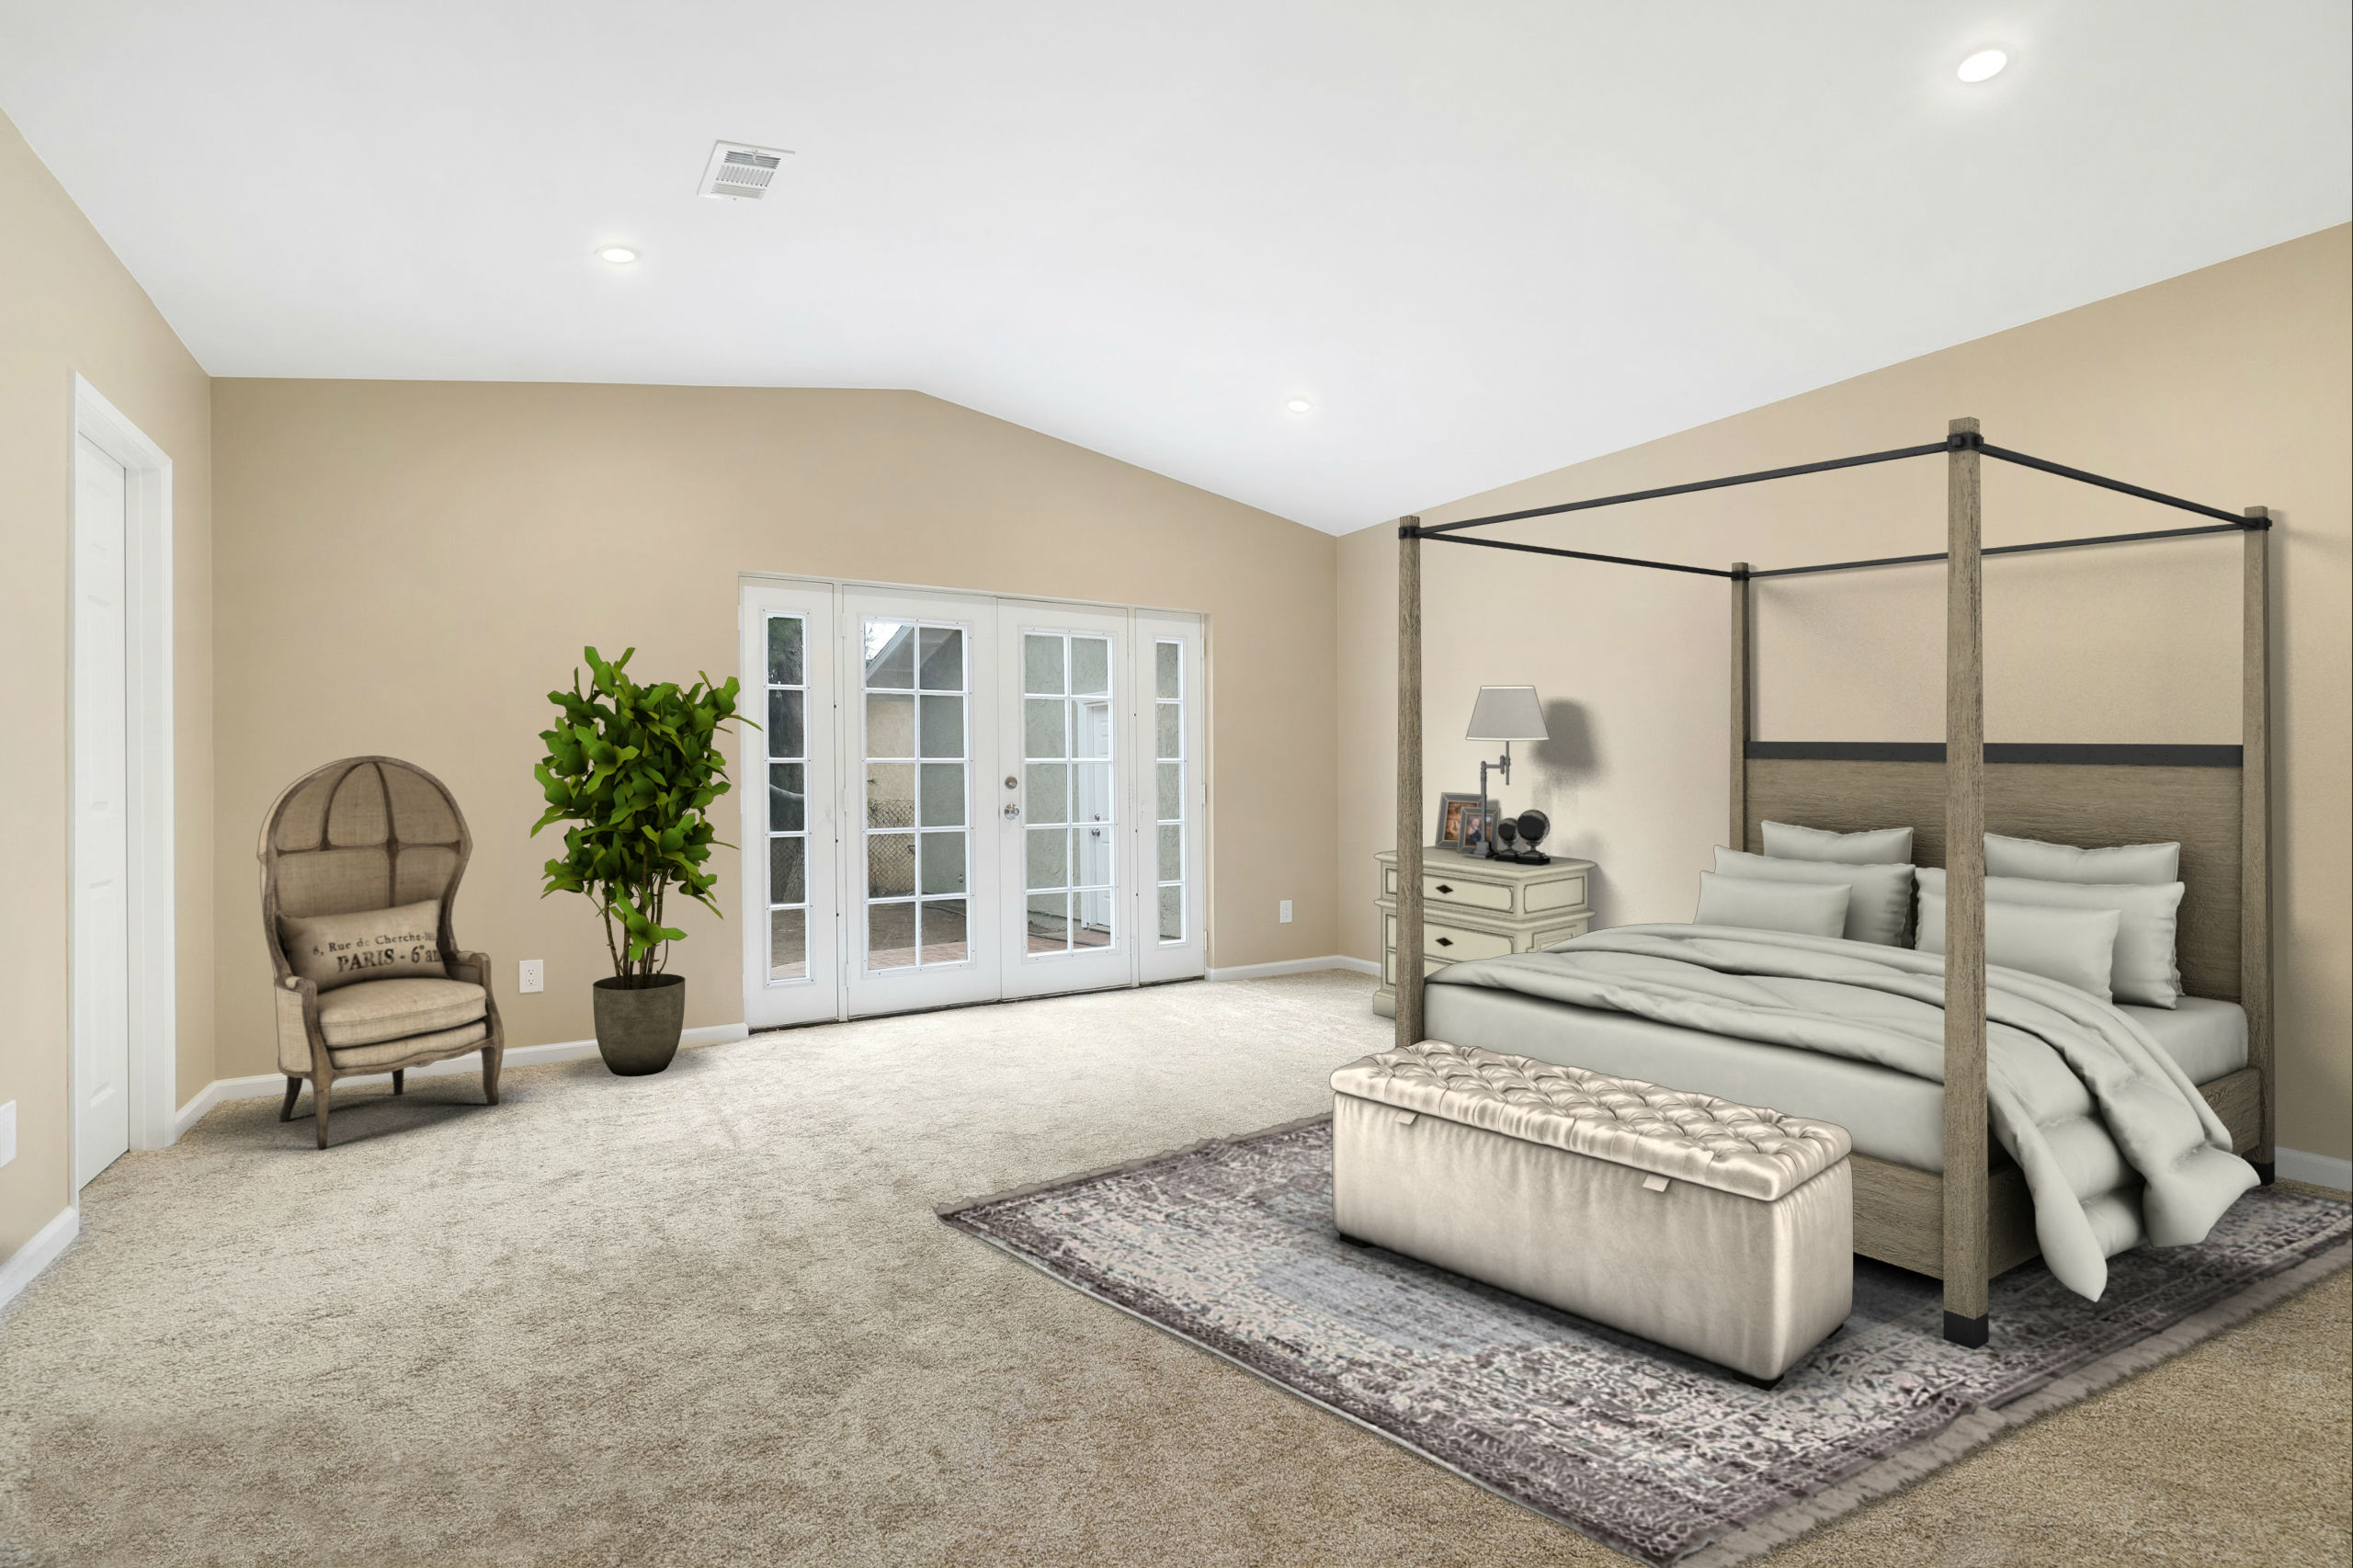 Double door entry leads to the spacious master suite with vaulted ceiling, recessed lighting, brand new carpet, walk-in closet, private bathroom, and French doors leading to back yard (install a spa right out back and you're all set). This is a virtually staged photo.